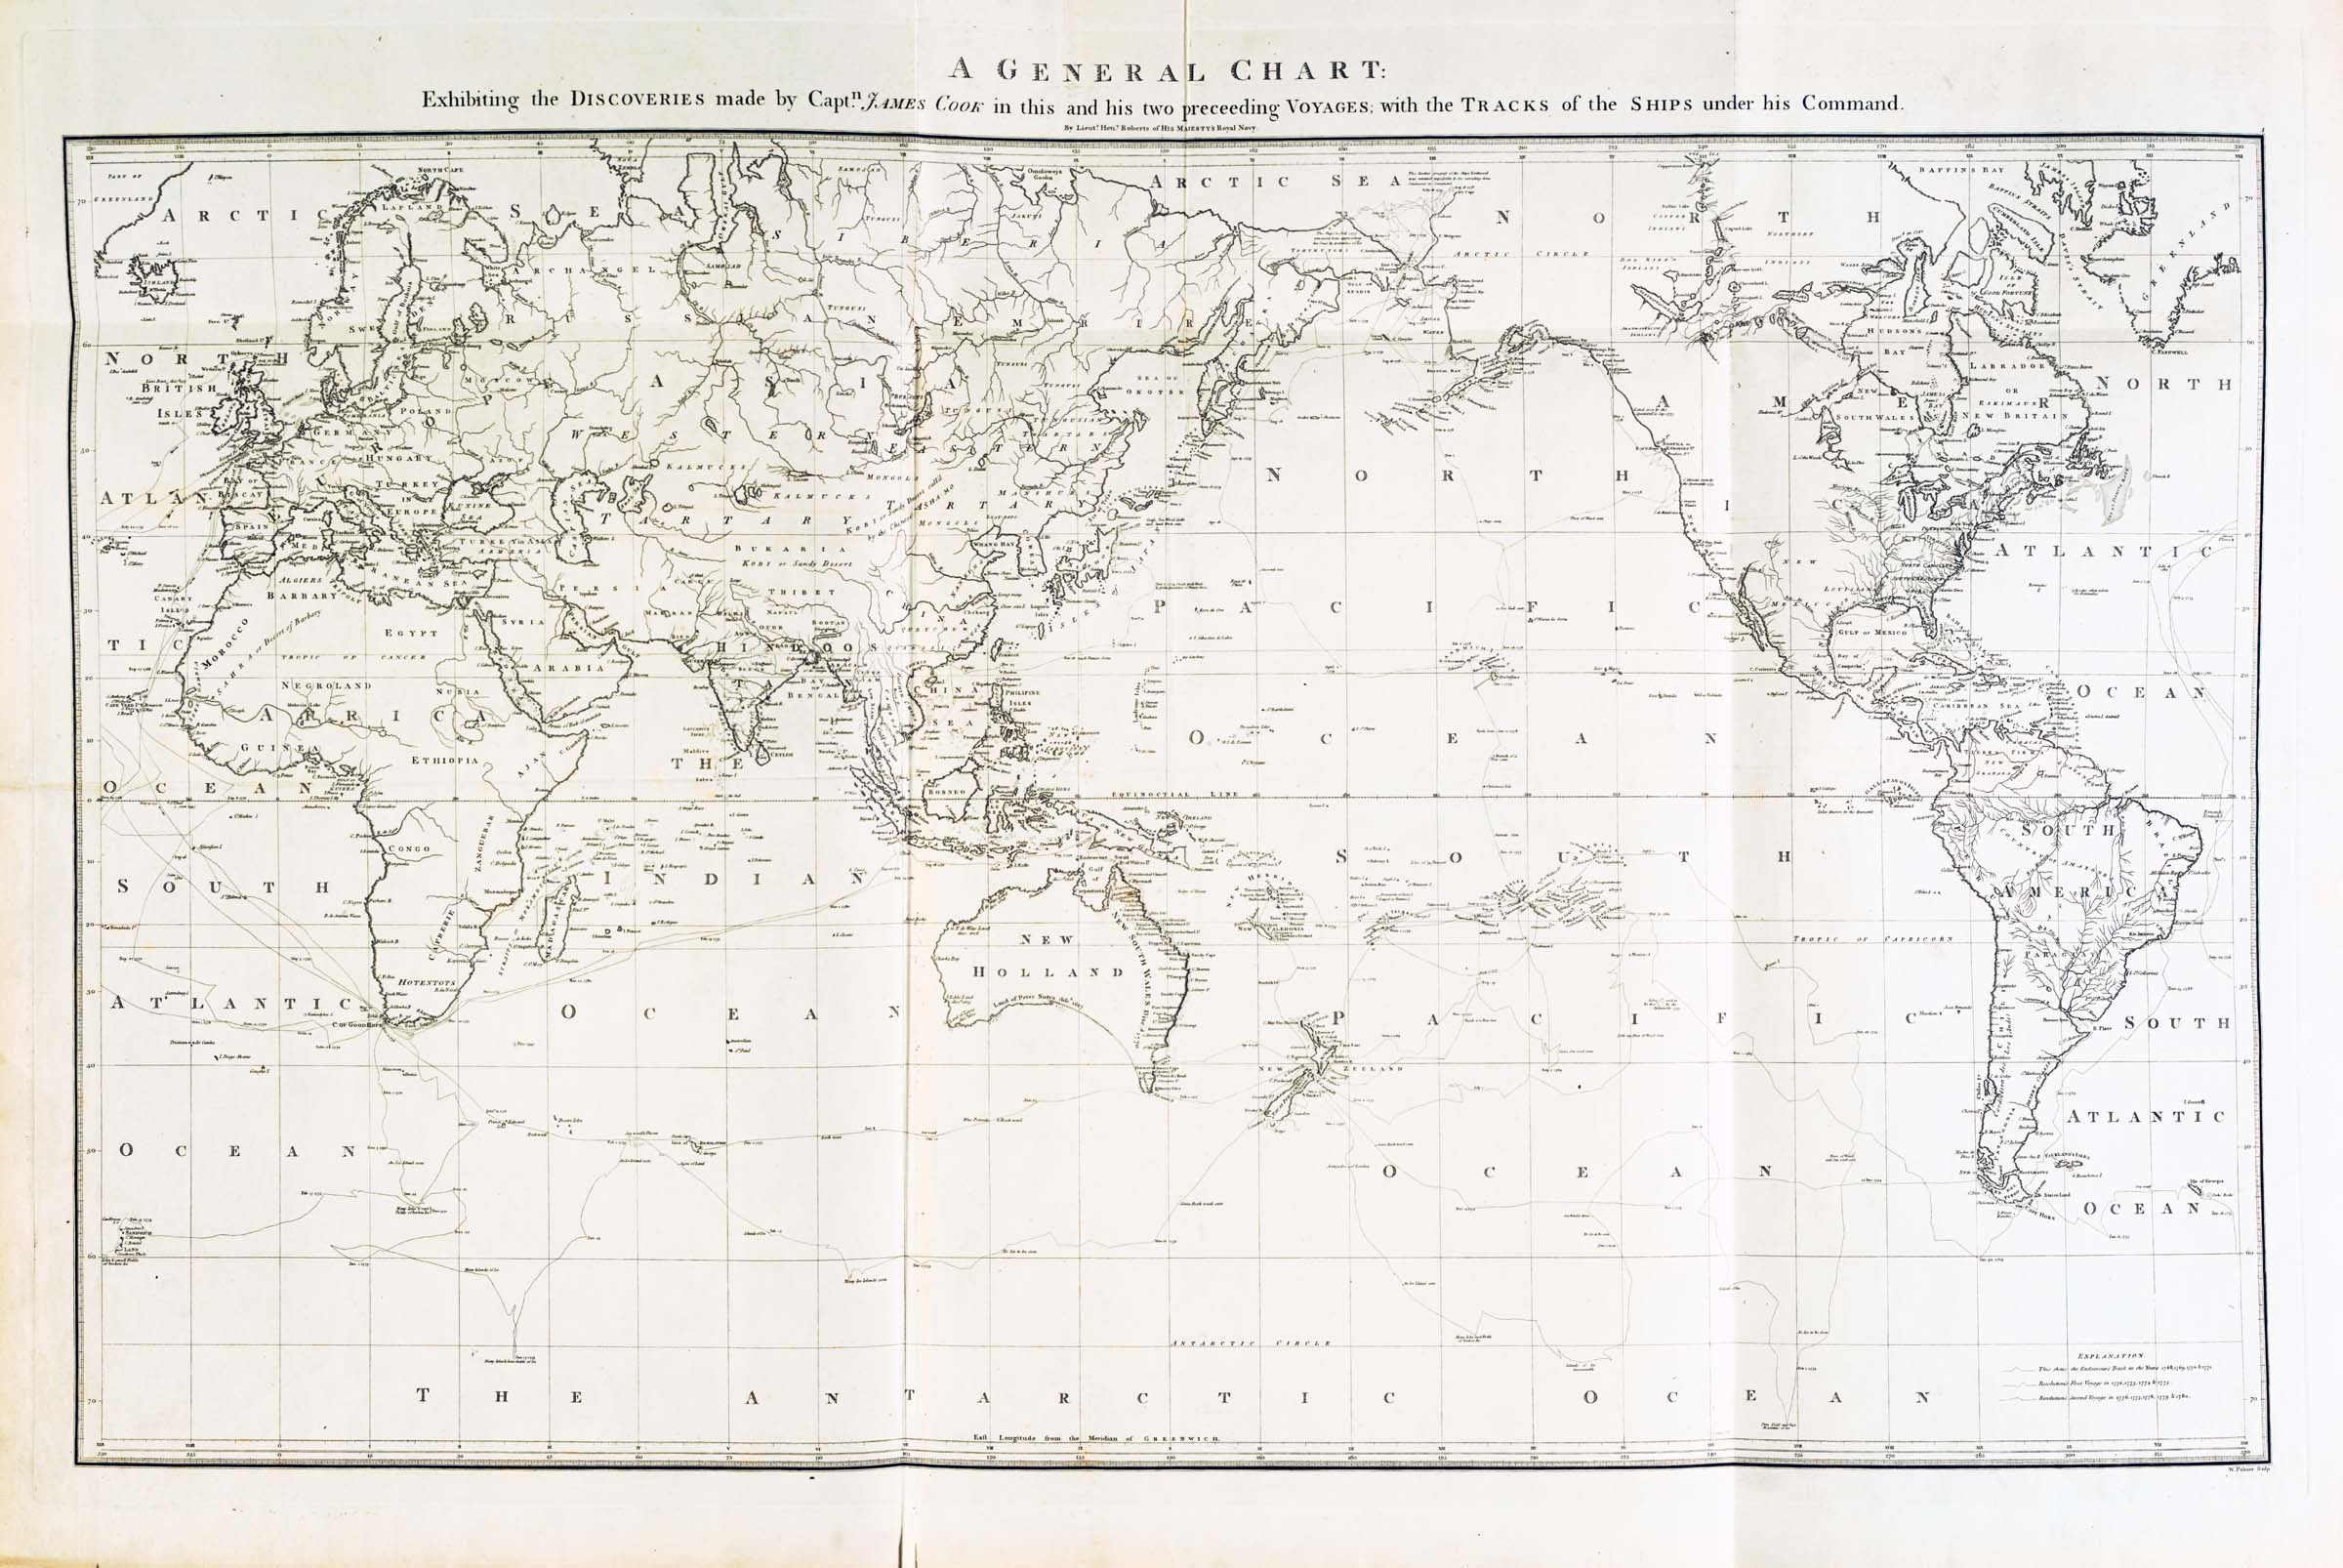 A General Chart: Exhibiting the Discoveries made by Capt.n James Cook in this and his two preceeding Voyages; with the Tracks of the Ships under his Command